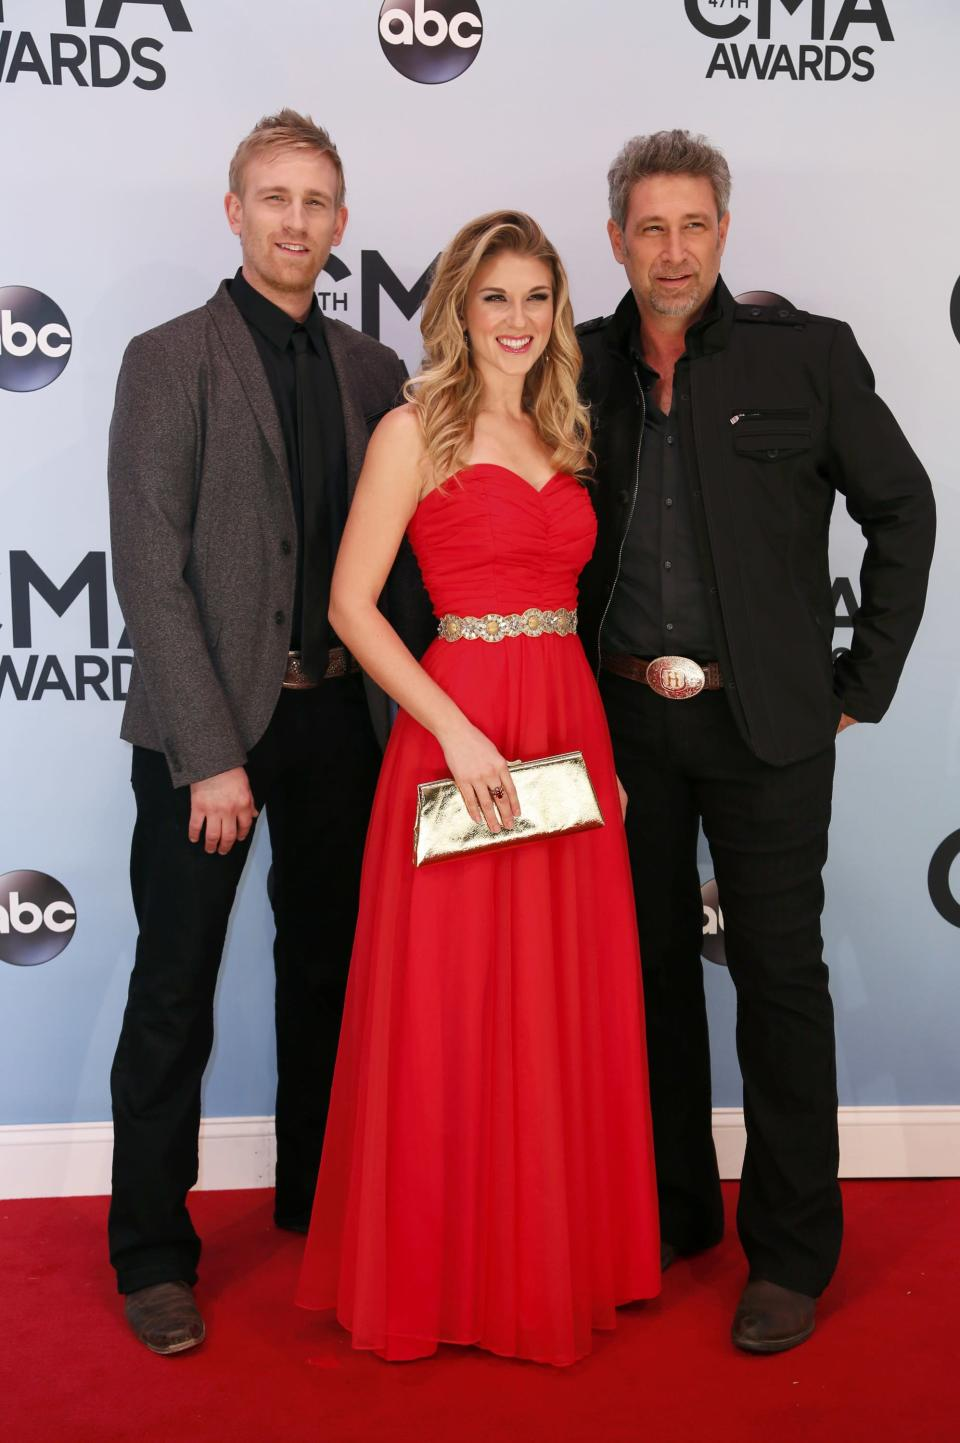 Singing trio The Henningsens, Brian Henningsen (R), his son Aaron, and daughter Clara, arrive at the 47th Country Music Association Awards in Nashville, Tennessee November 6, 2013. REUTERS/Eric Henderson (UNITED STATES - Tags: ENTERTAINMENT)